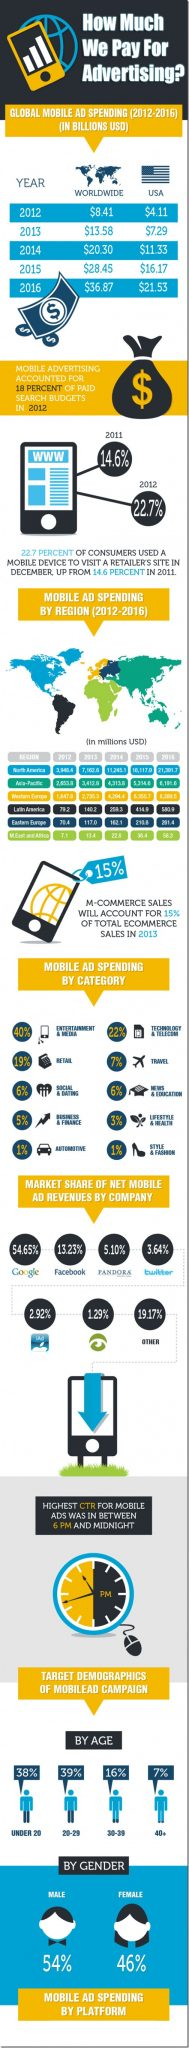 How Much We Pay For Advertising (1)